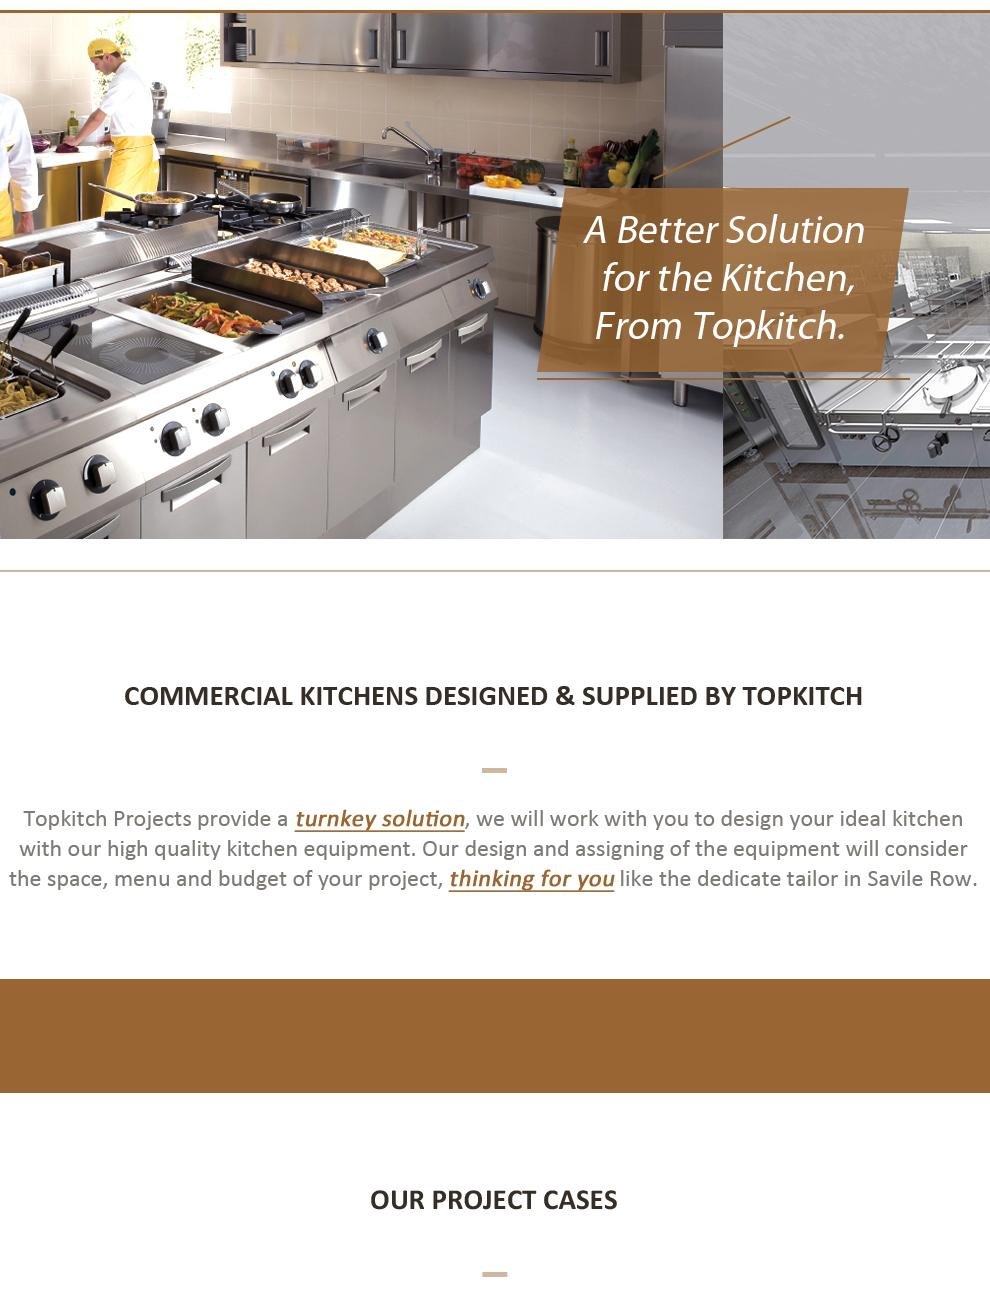 guangzhou topkitch kitchen equipment co., ltd. - combi oven,fryer